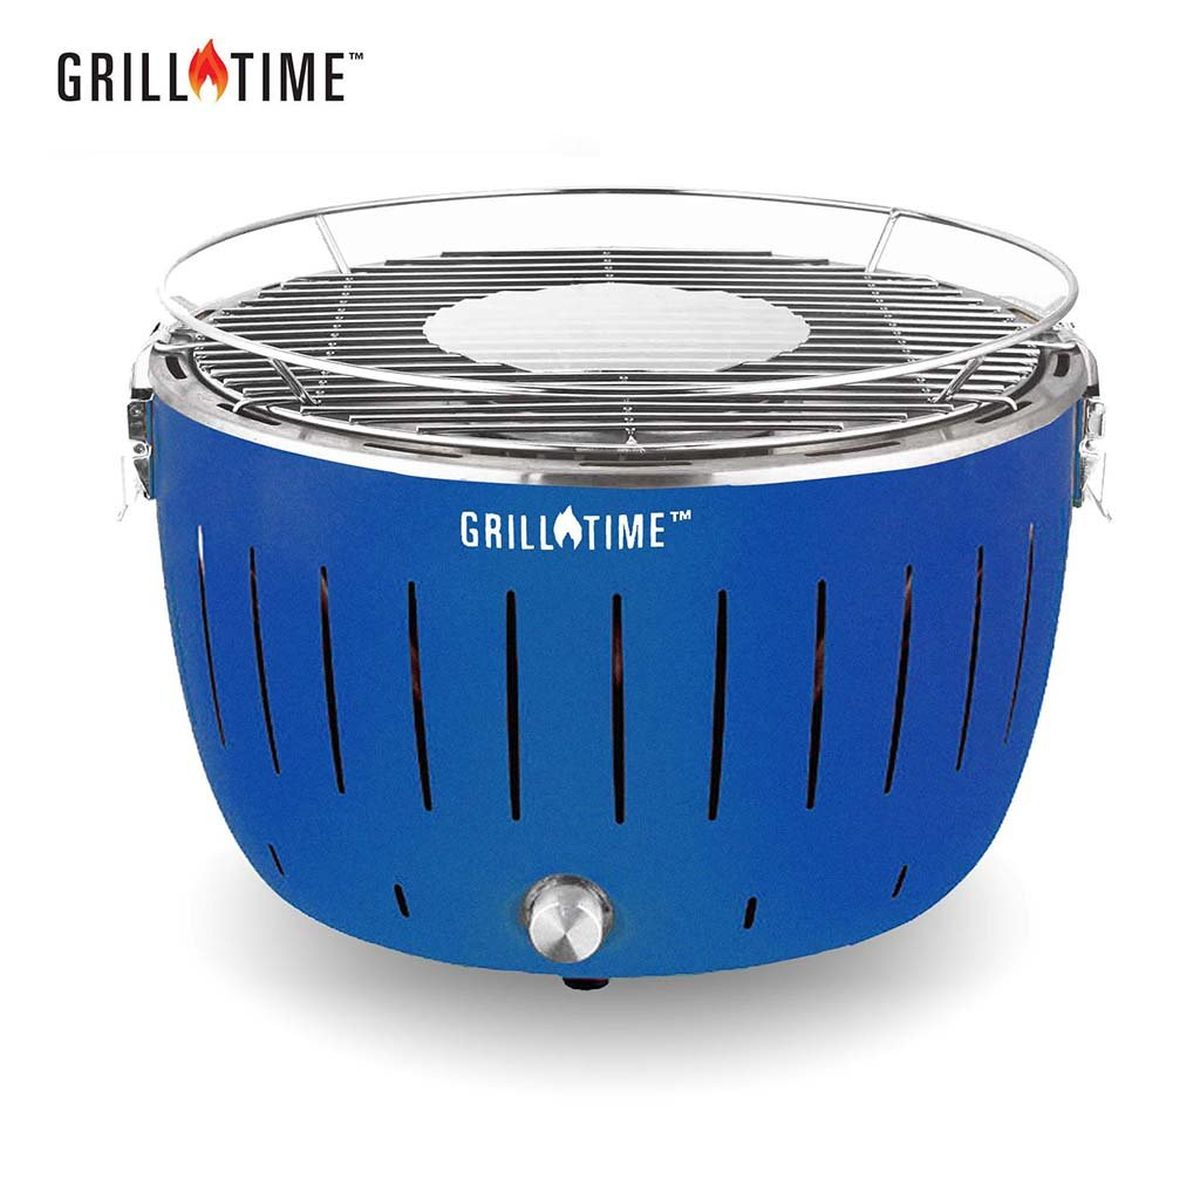 Grill Time Tailgater GT Regular Pack Portable Charcoal Grill - Blue